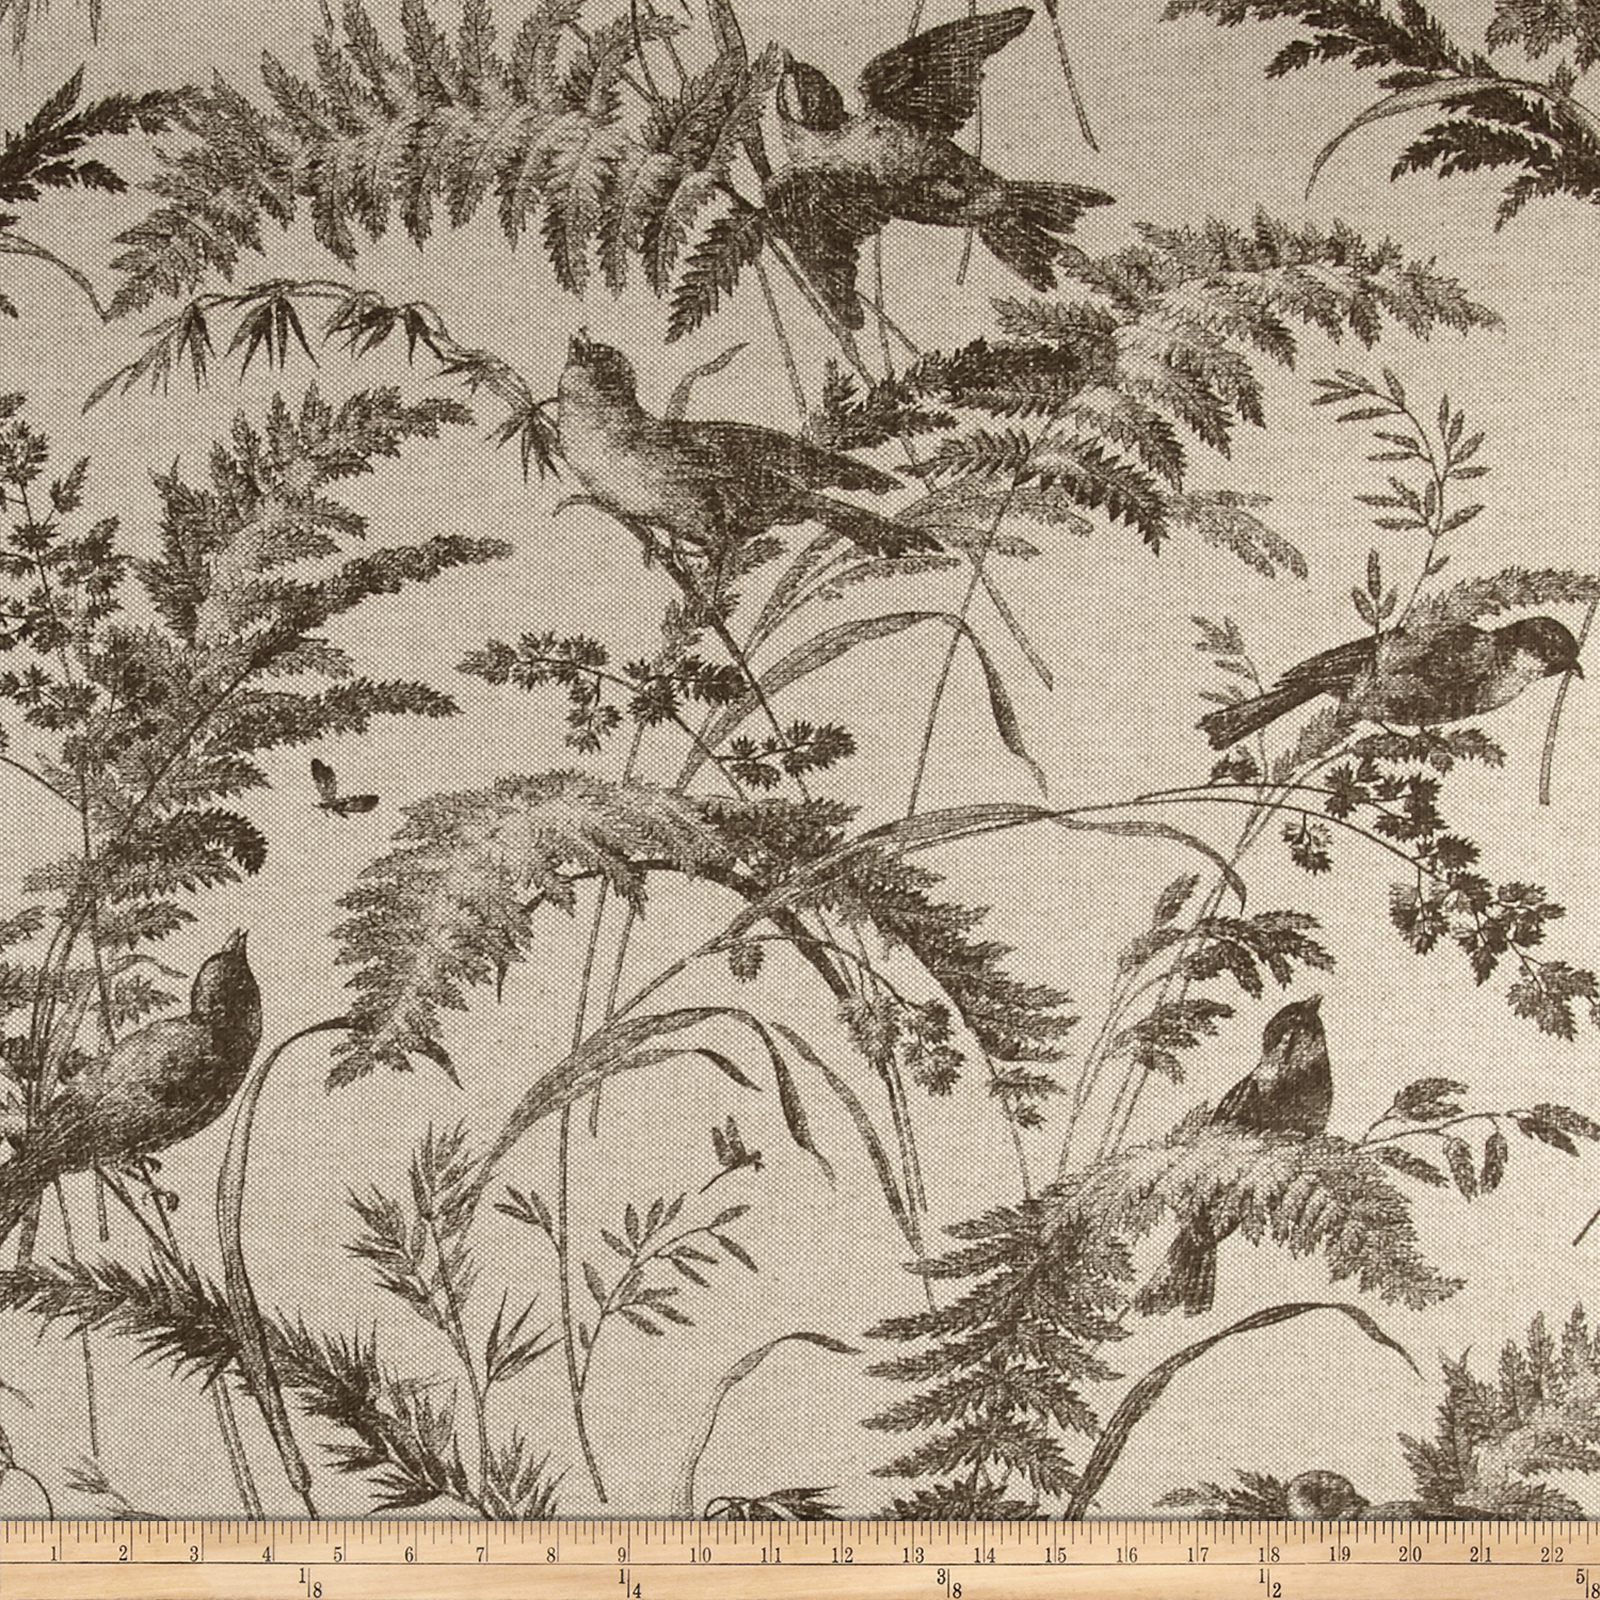 Lacefield Bird Toile In Heavy Basket Fabric by Lacefield in USA